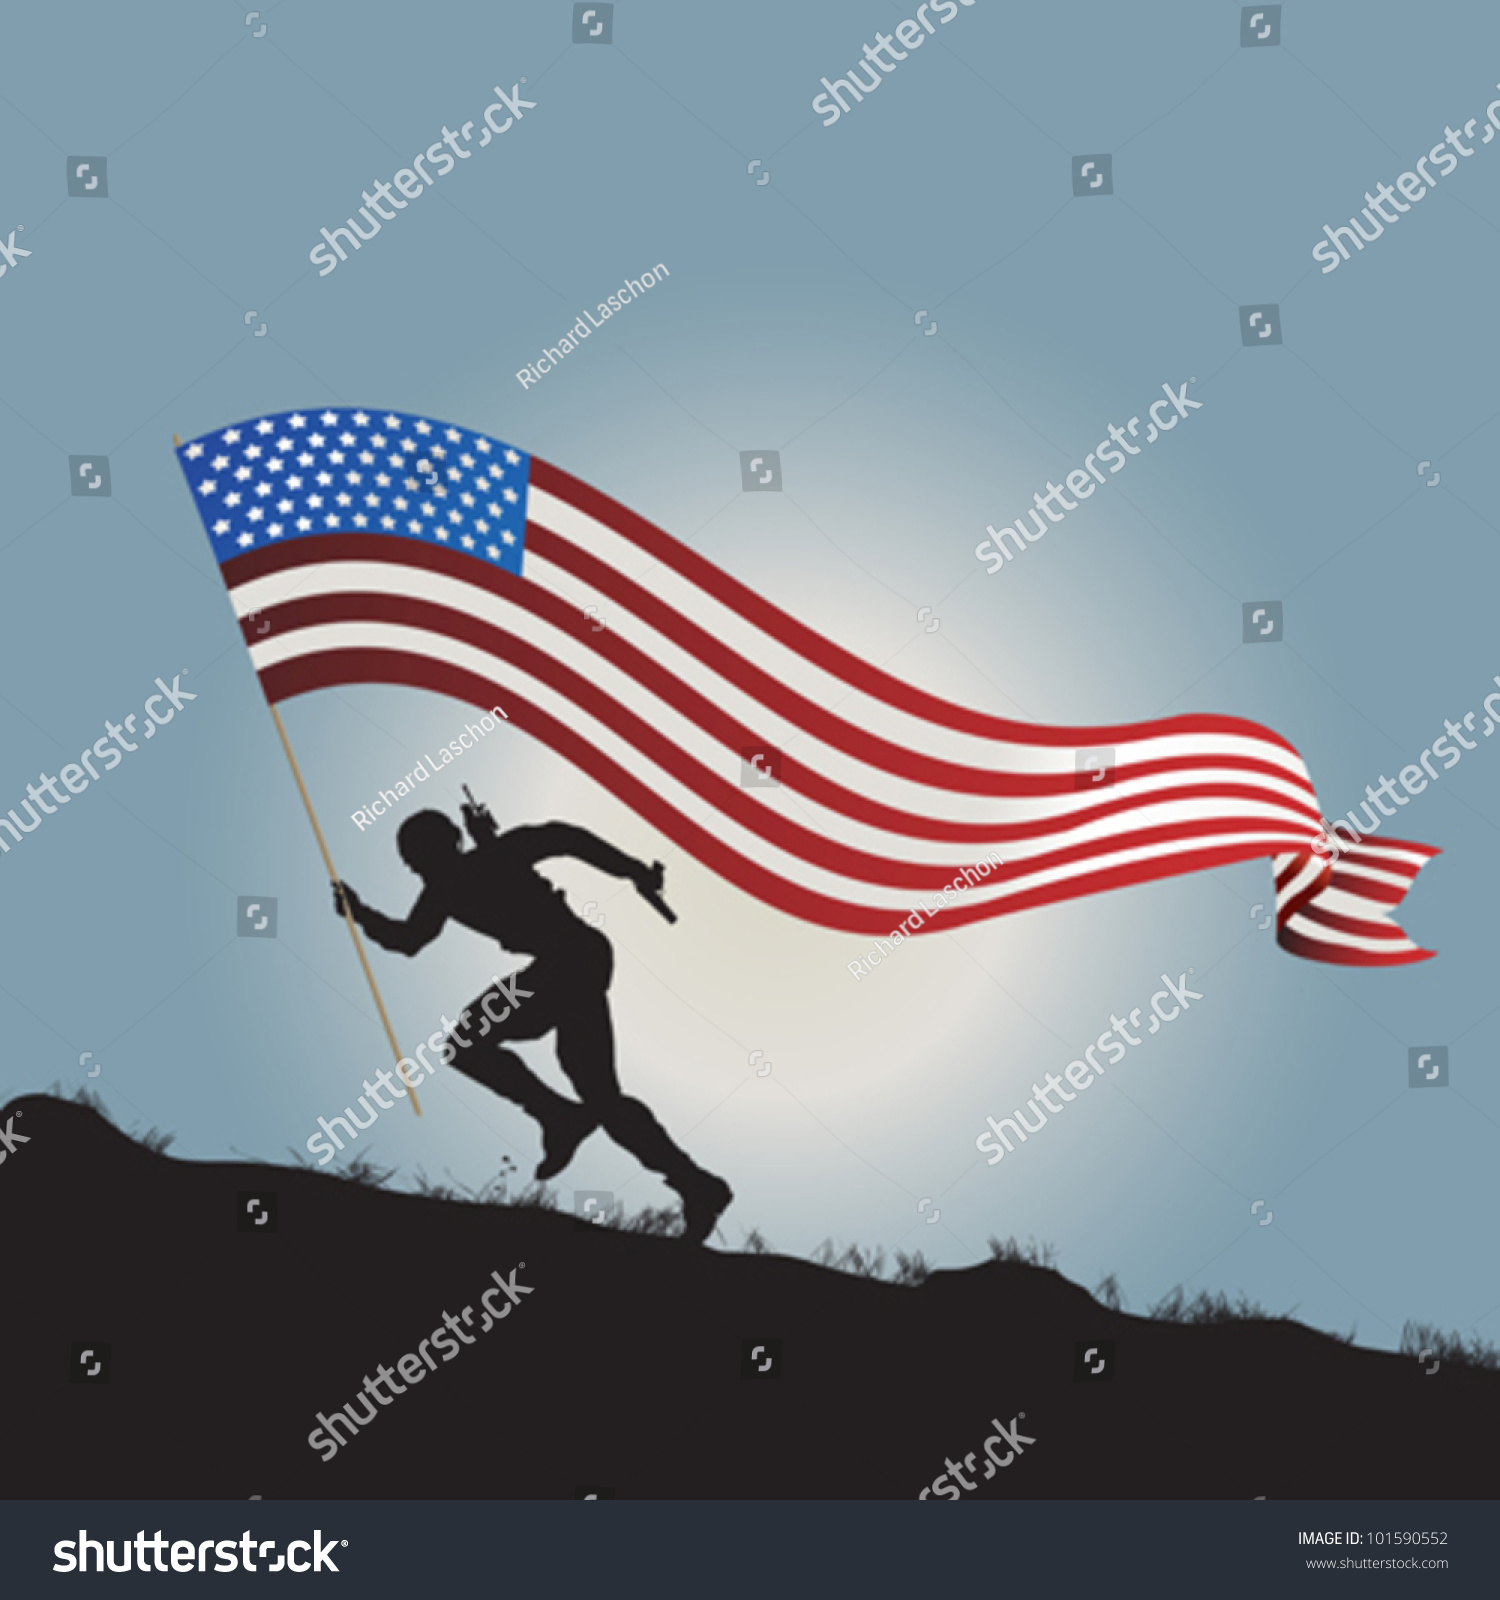 Running Horses Silhouette Wall Border Stock Vector Running Soldier Silhouette With Flag Of